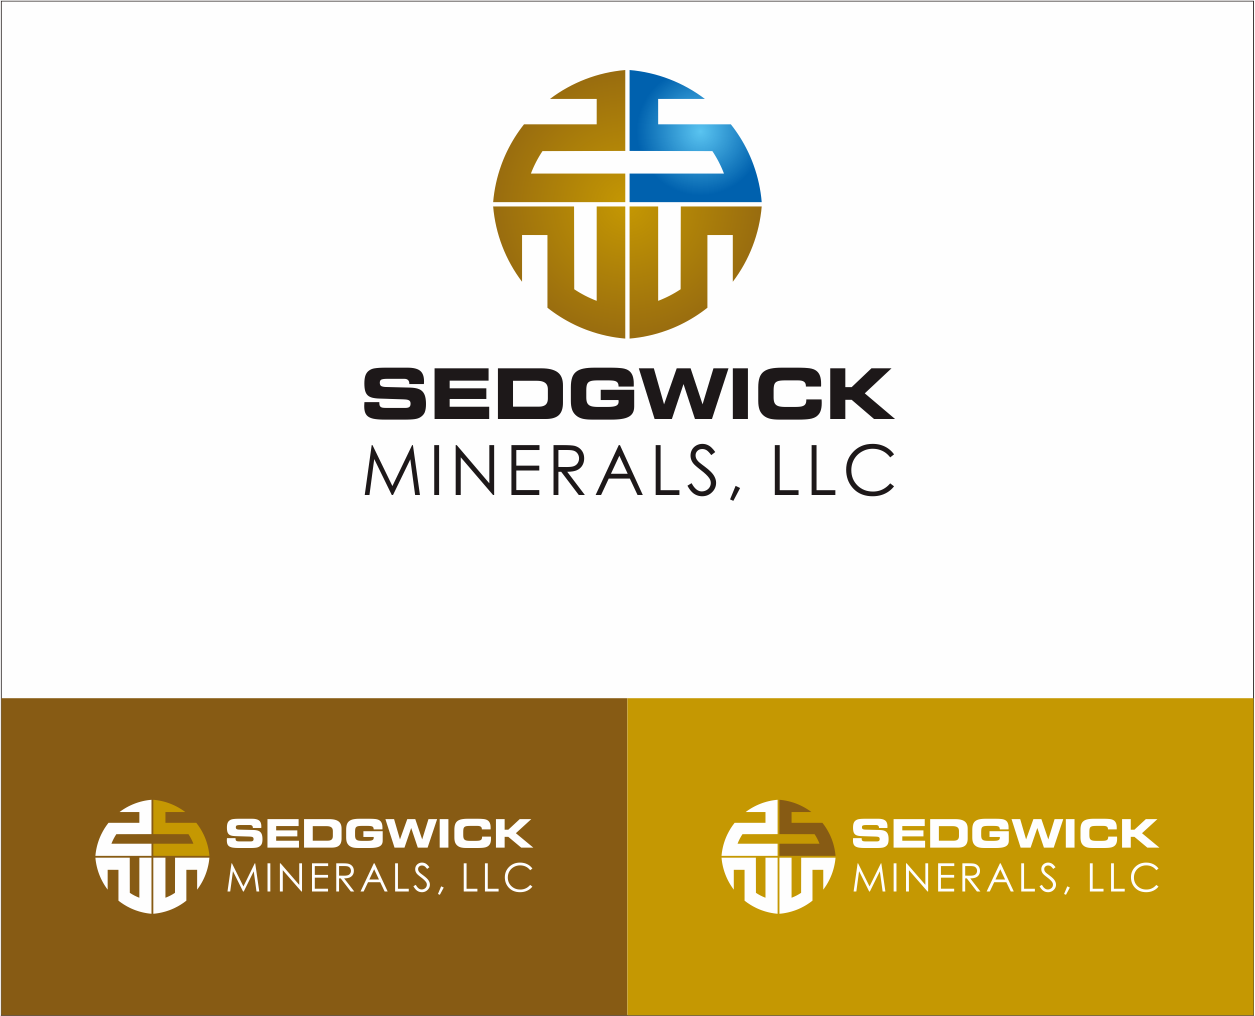 Logo Design by Armada Jamaluddin - Entry No. 73 in the Logo Design Contest Inspiring Logo Design for Sedgwick Minerals, LLC.